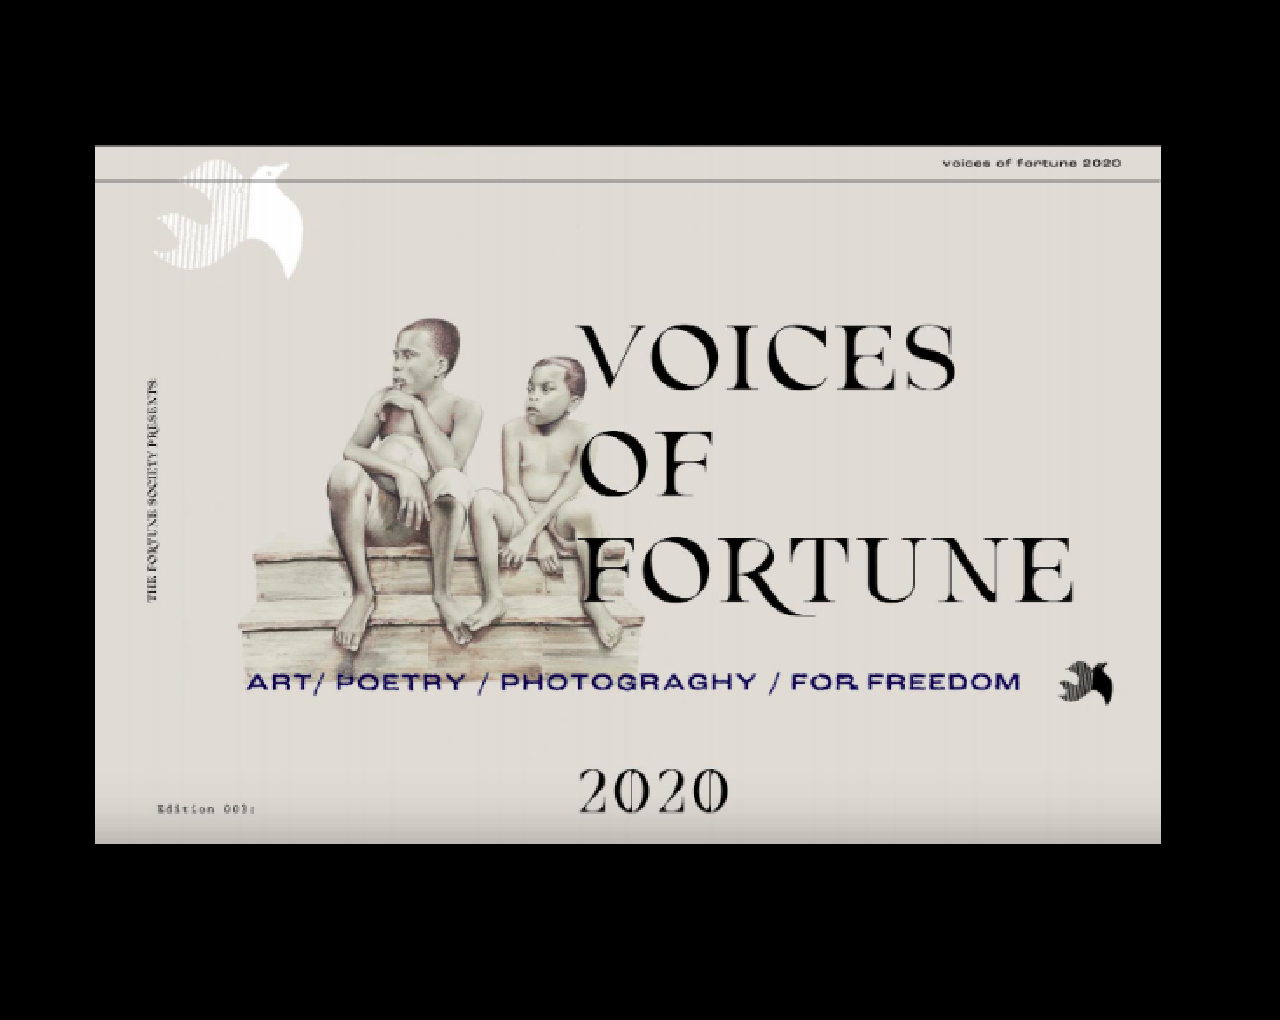 Voices of Fortune 2020